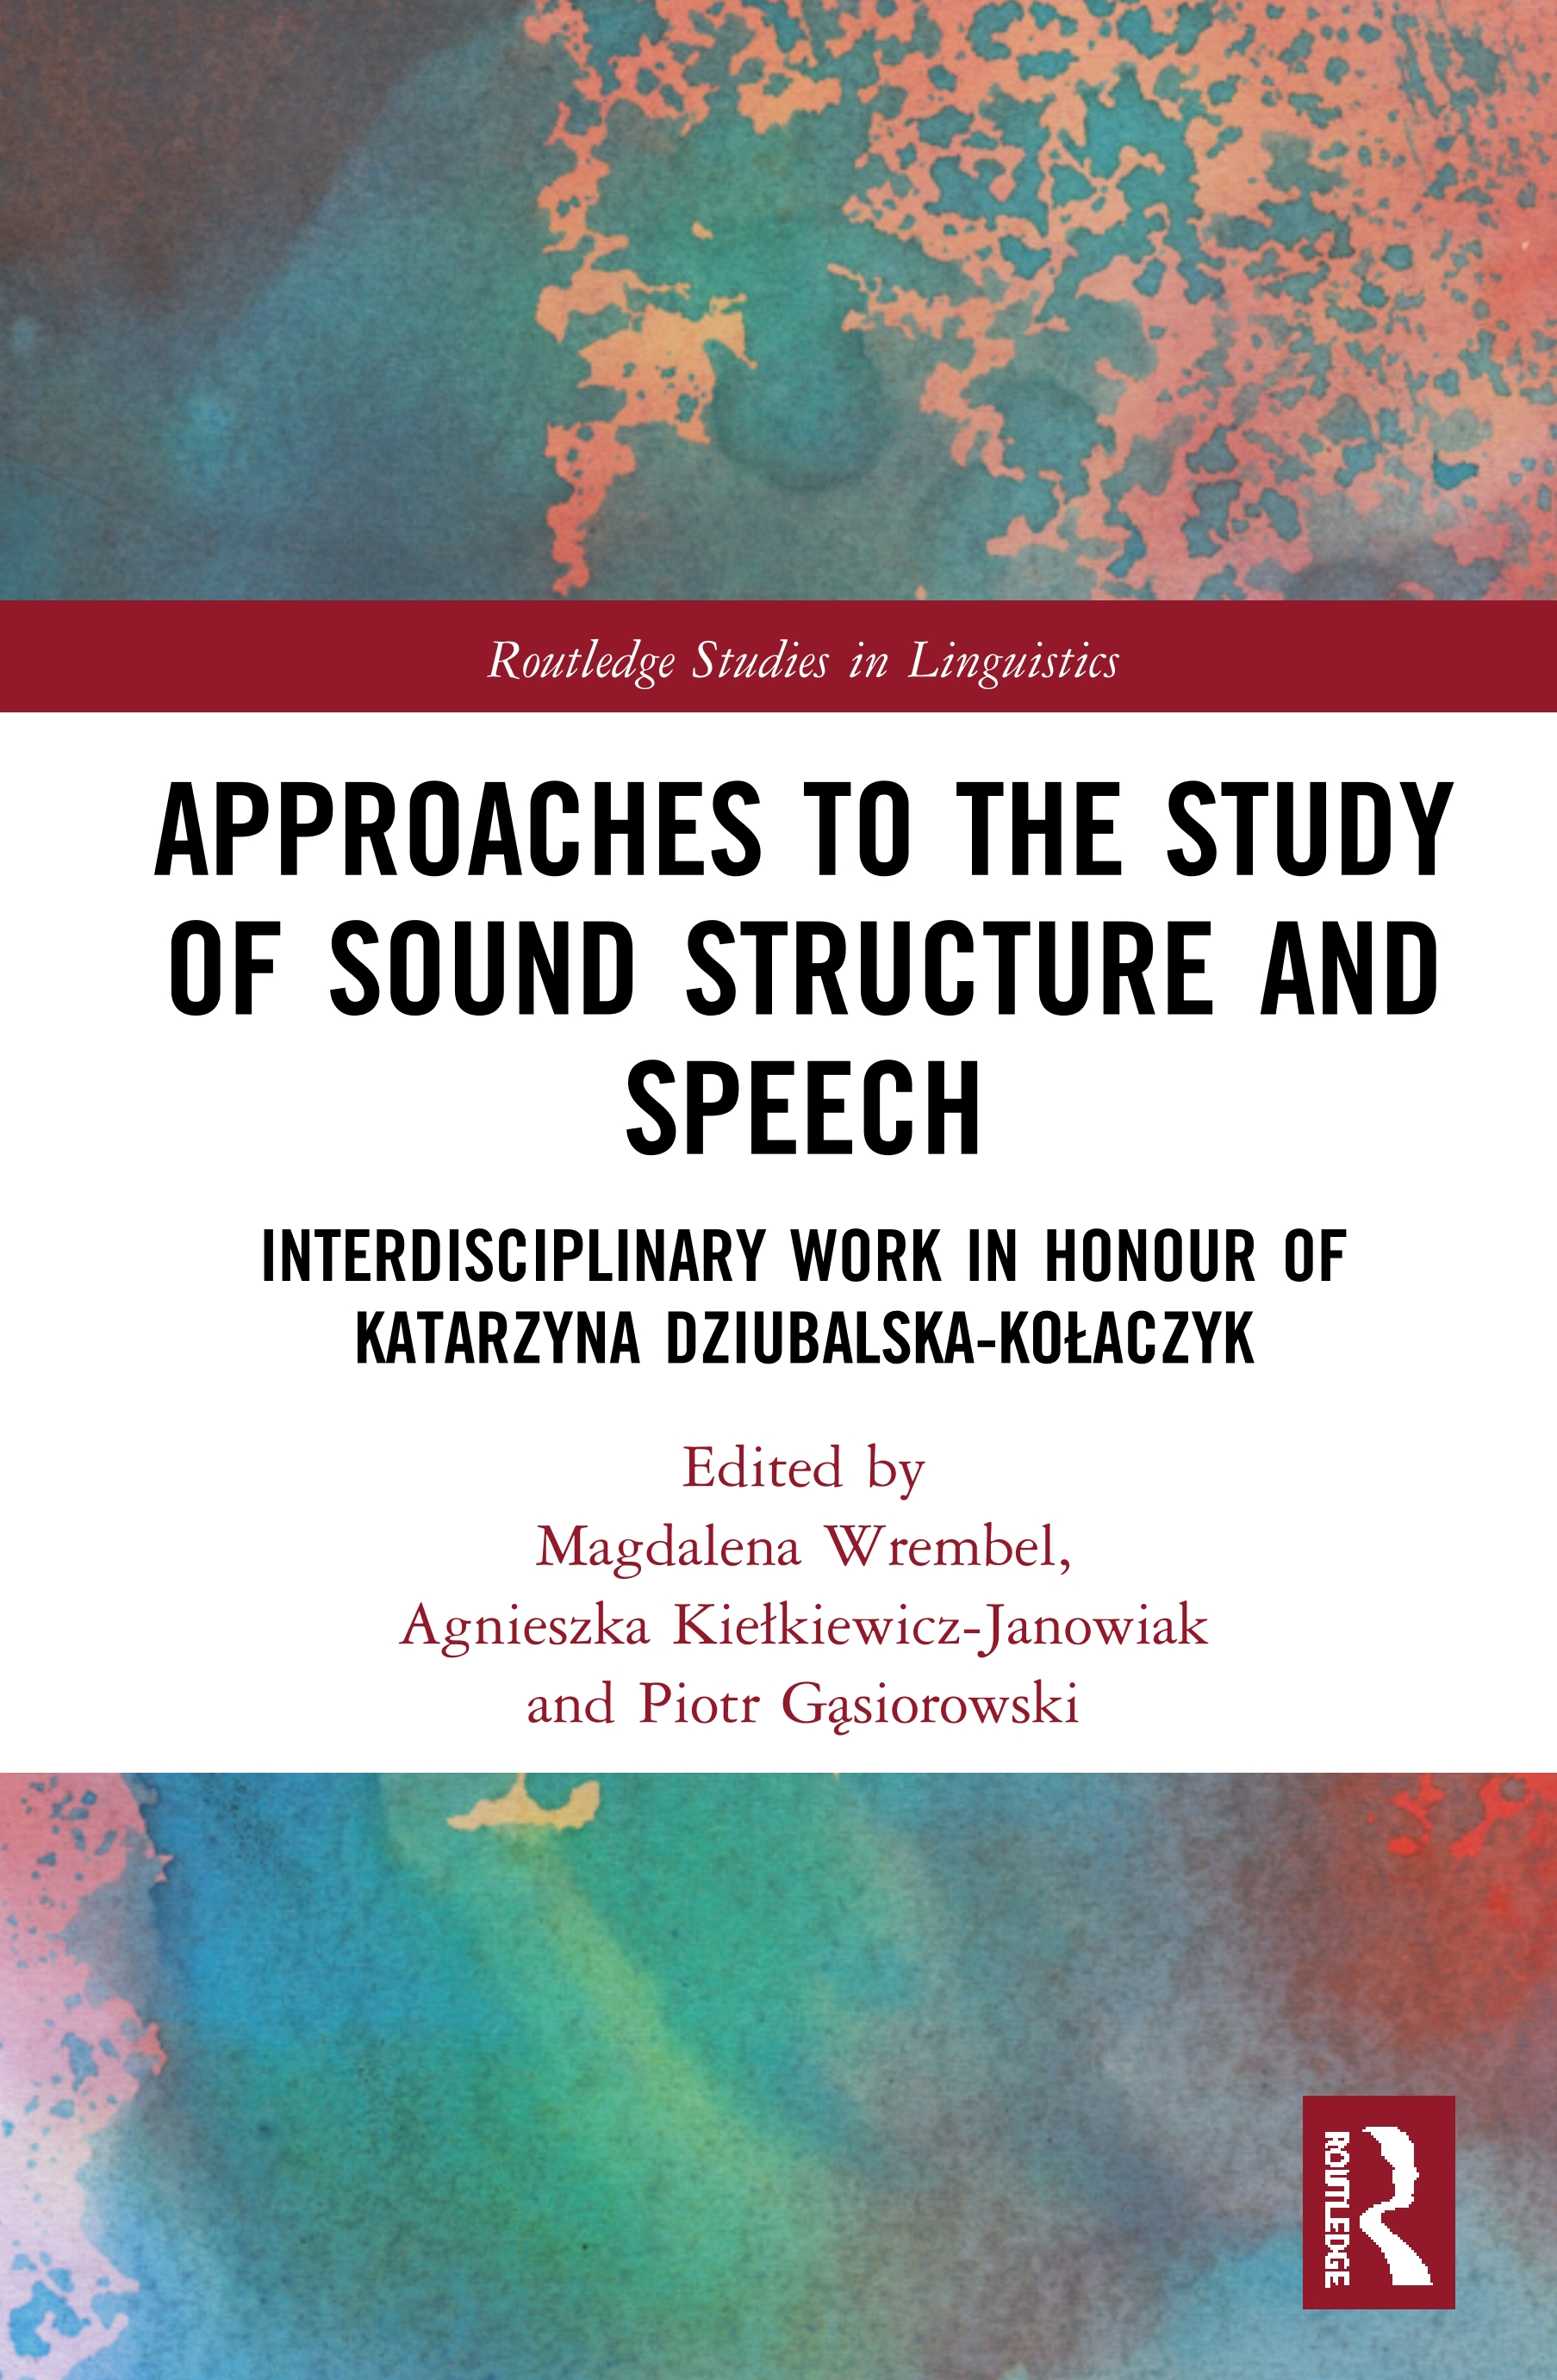 Approaches to the Study of Sound Structure and Speech: Interdisciplinary Work in Honour of Katarzyna Dziubalska-Kołaczyk book cover